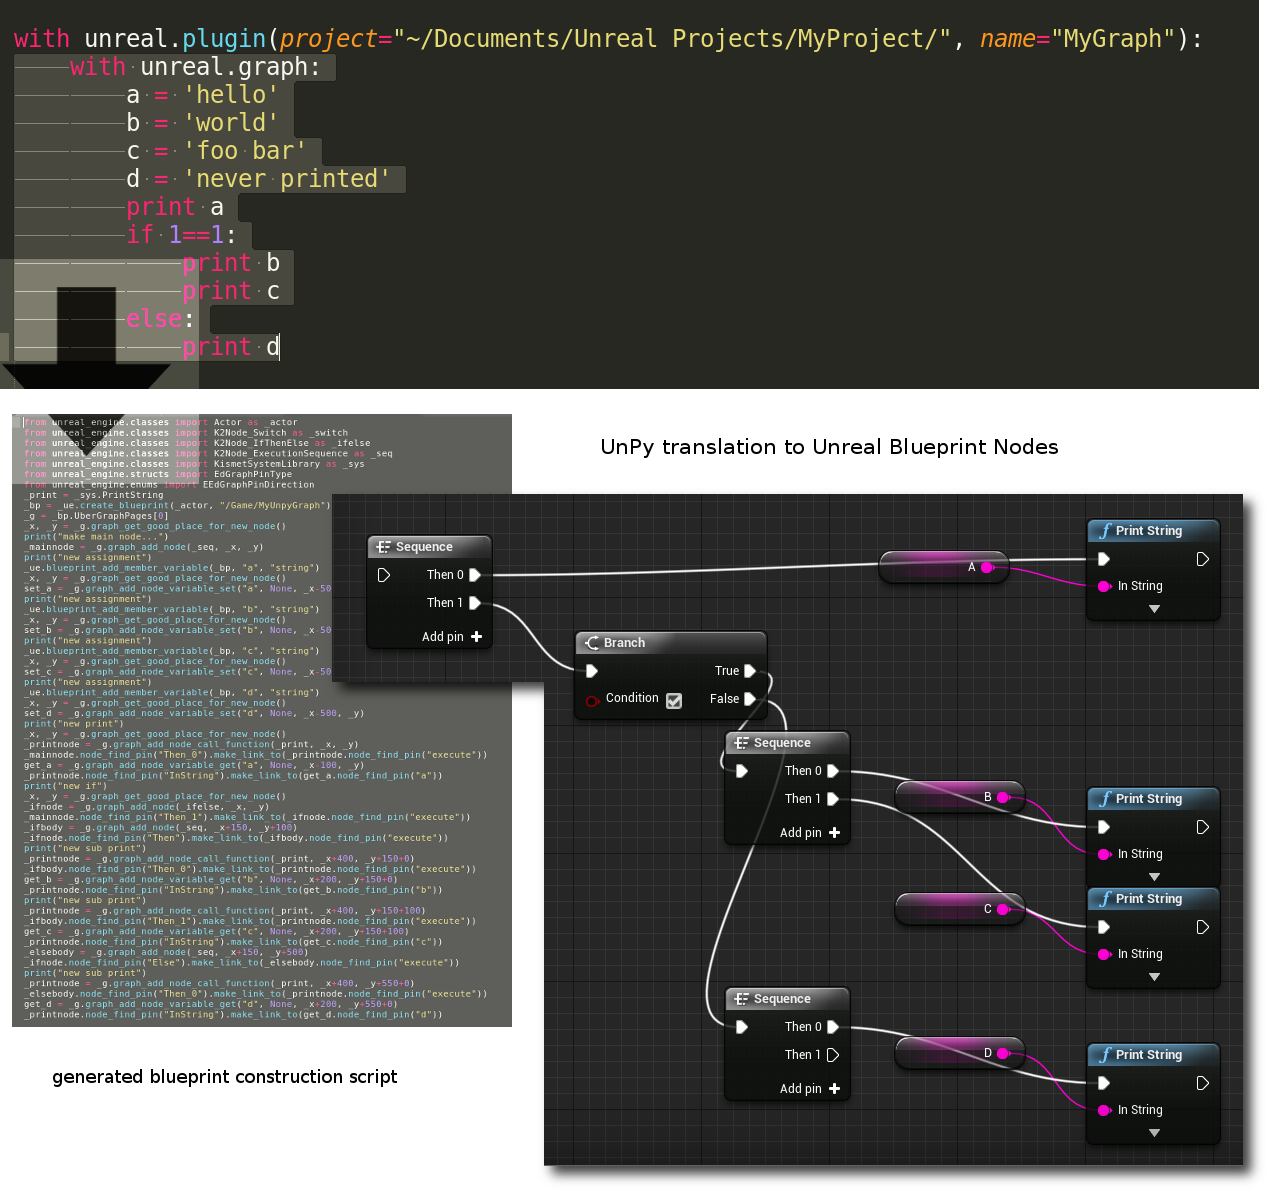 Pyppet unblender below another example that also shows the generated unrealenginepython script that builds the blueprint nodes inside of unreal editor malvernweather